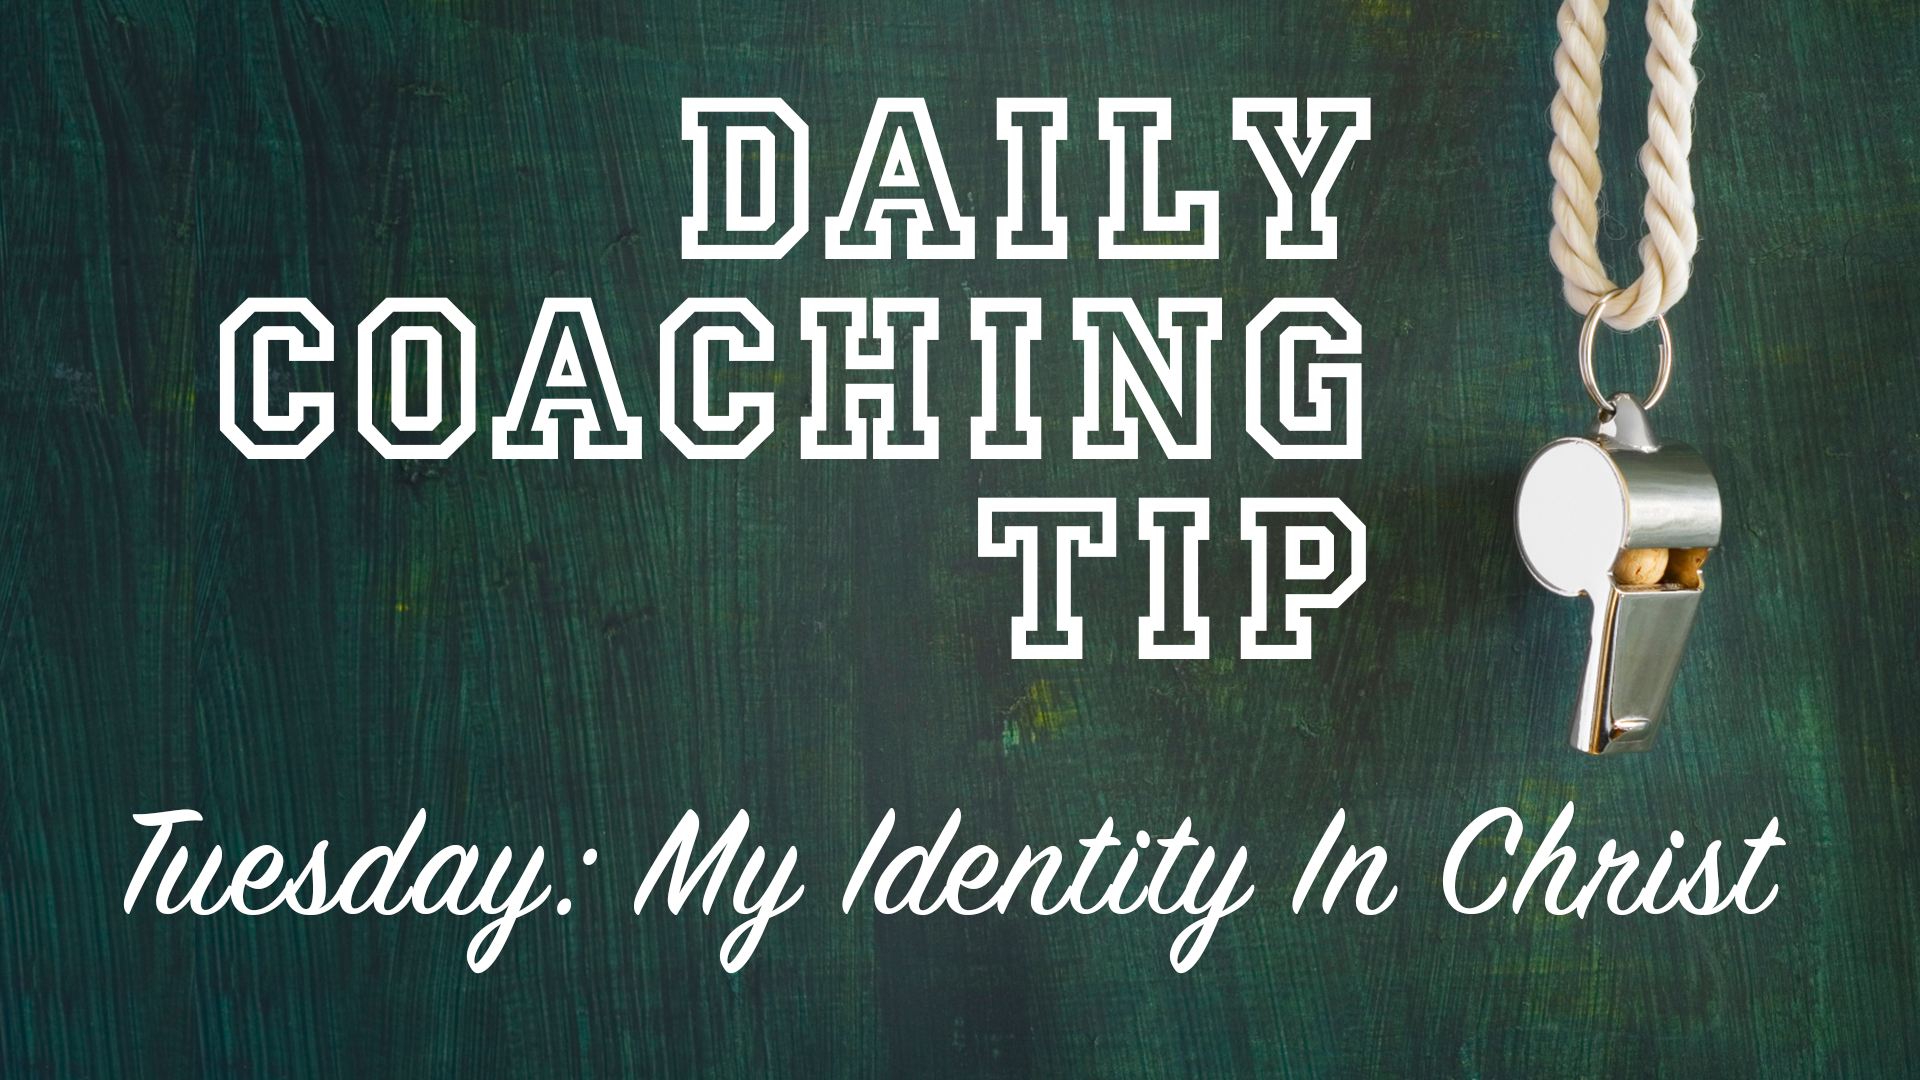 Daily Coaching Video, Tuesday, April 12, 2016